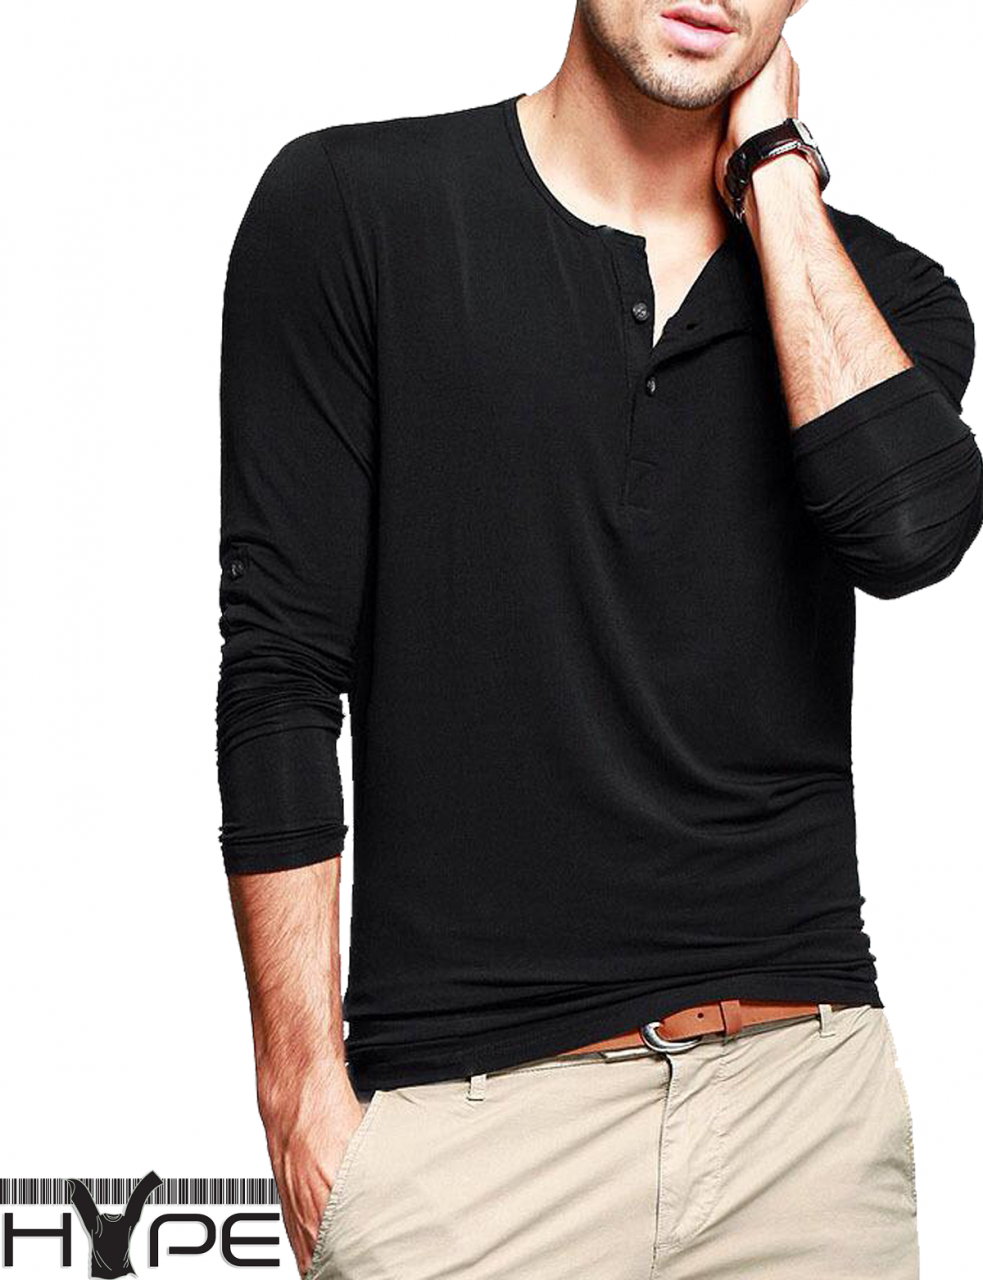 c99cee70763c3 Mens T Shirts Online Shopping In Pakistan